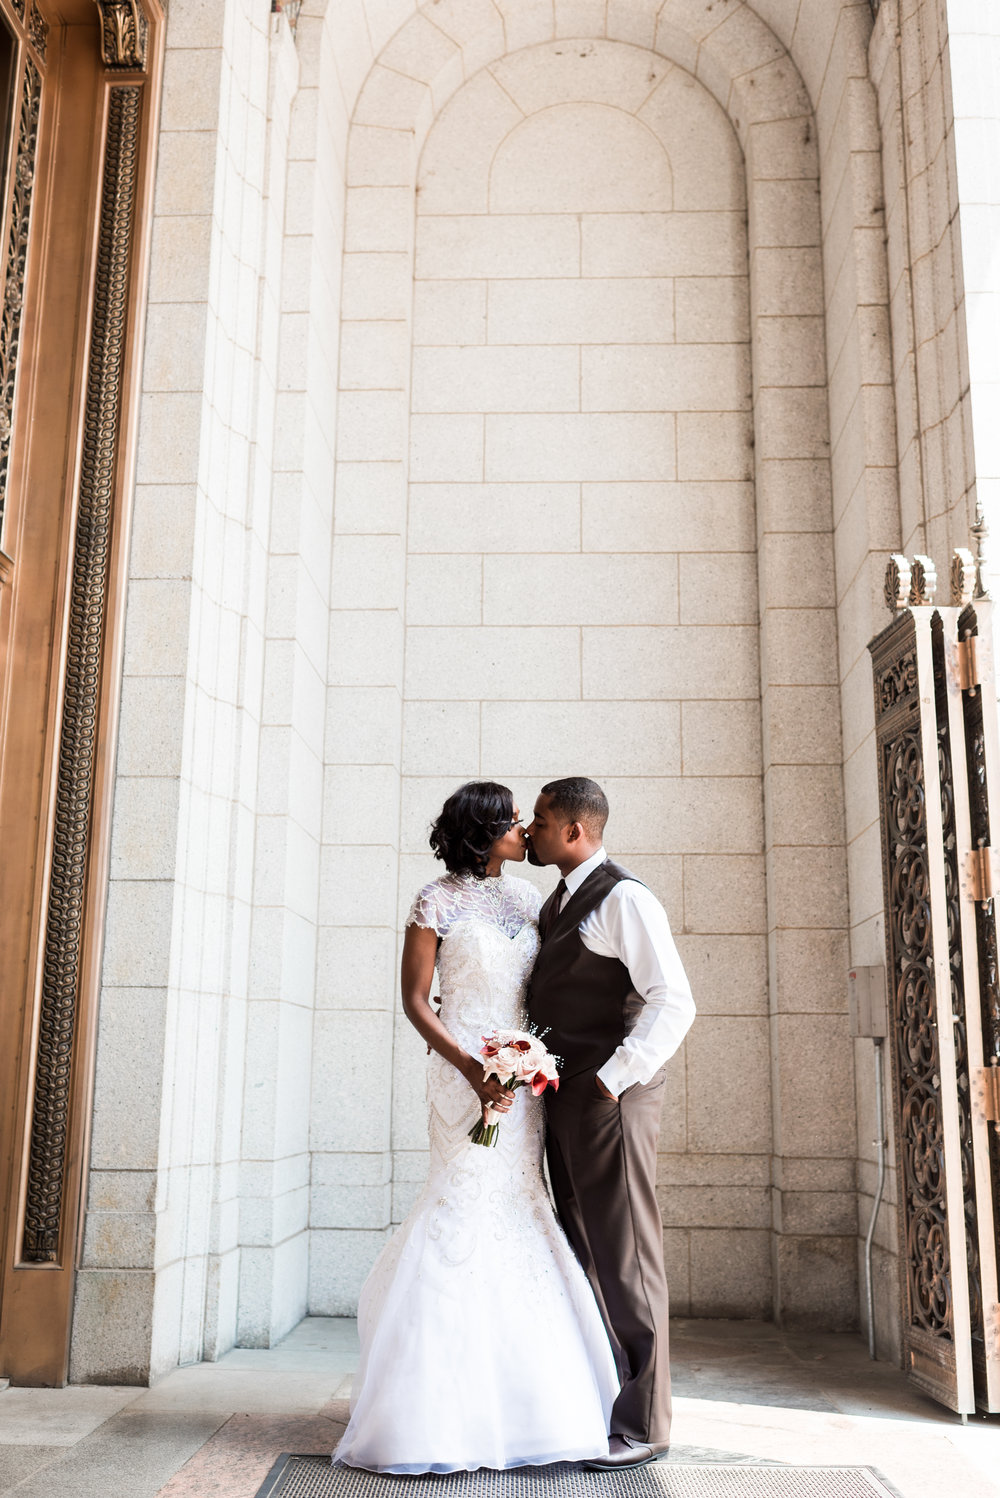 st-louis-wedding-photographer-third-baptist-church-273.jpg